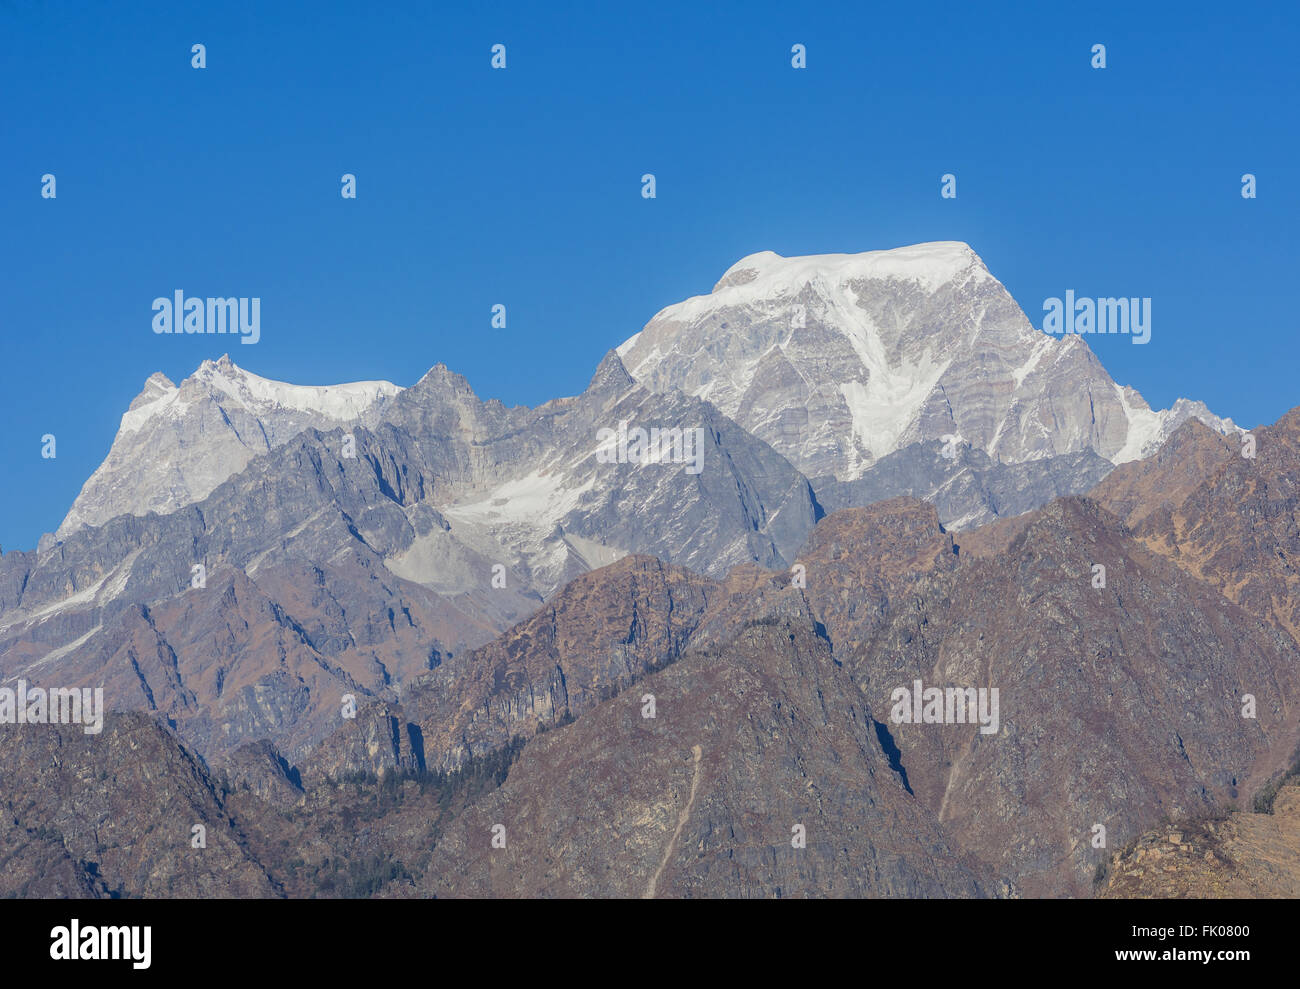 Hathi and Ghori Parwat snow clad peak in Indian Himalaya - Stock Image